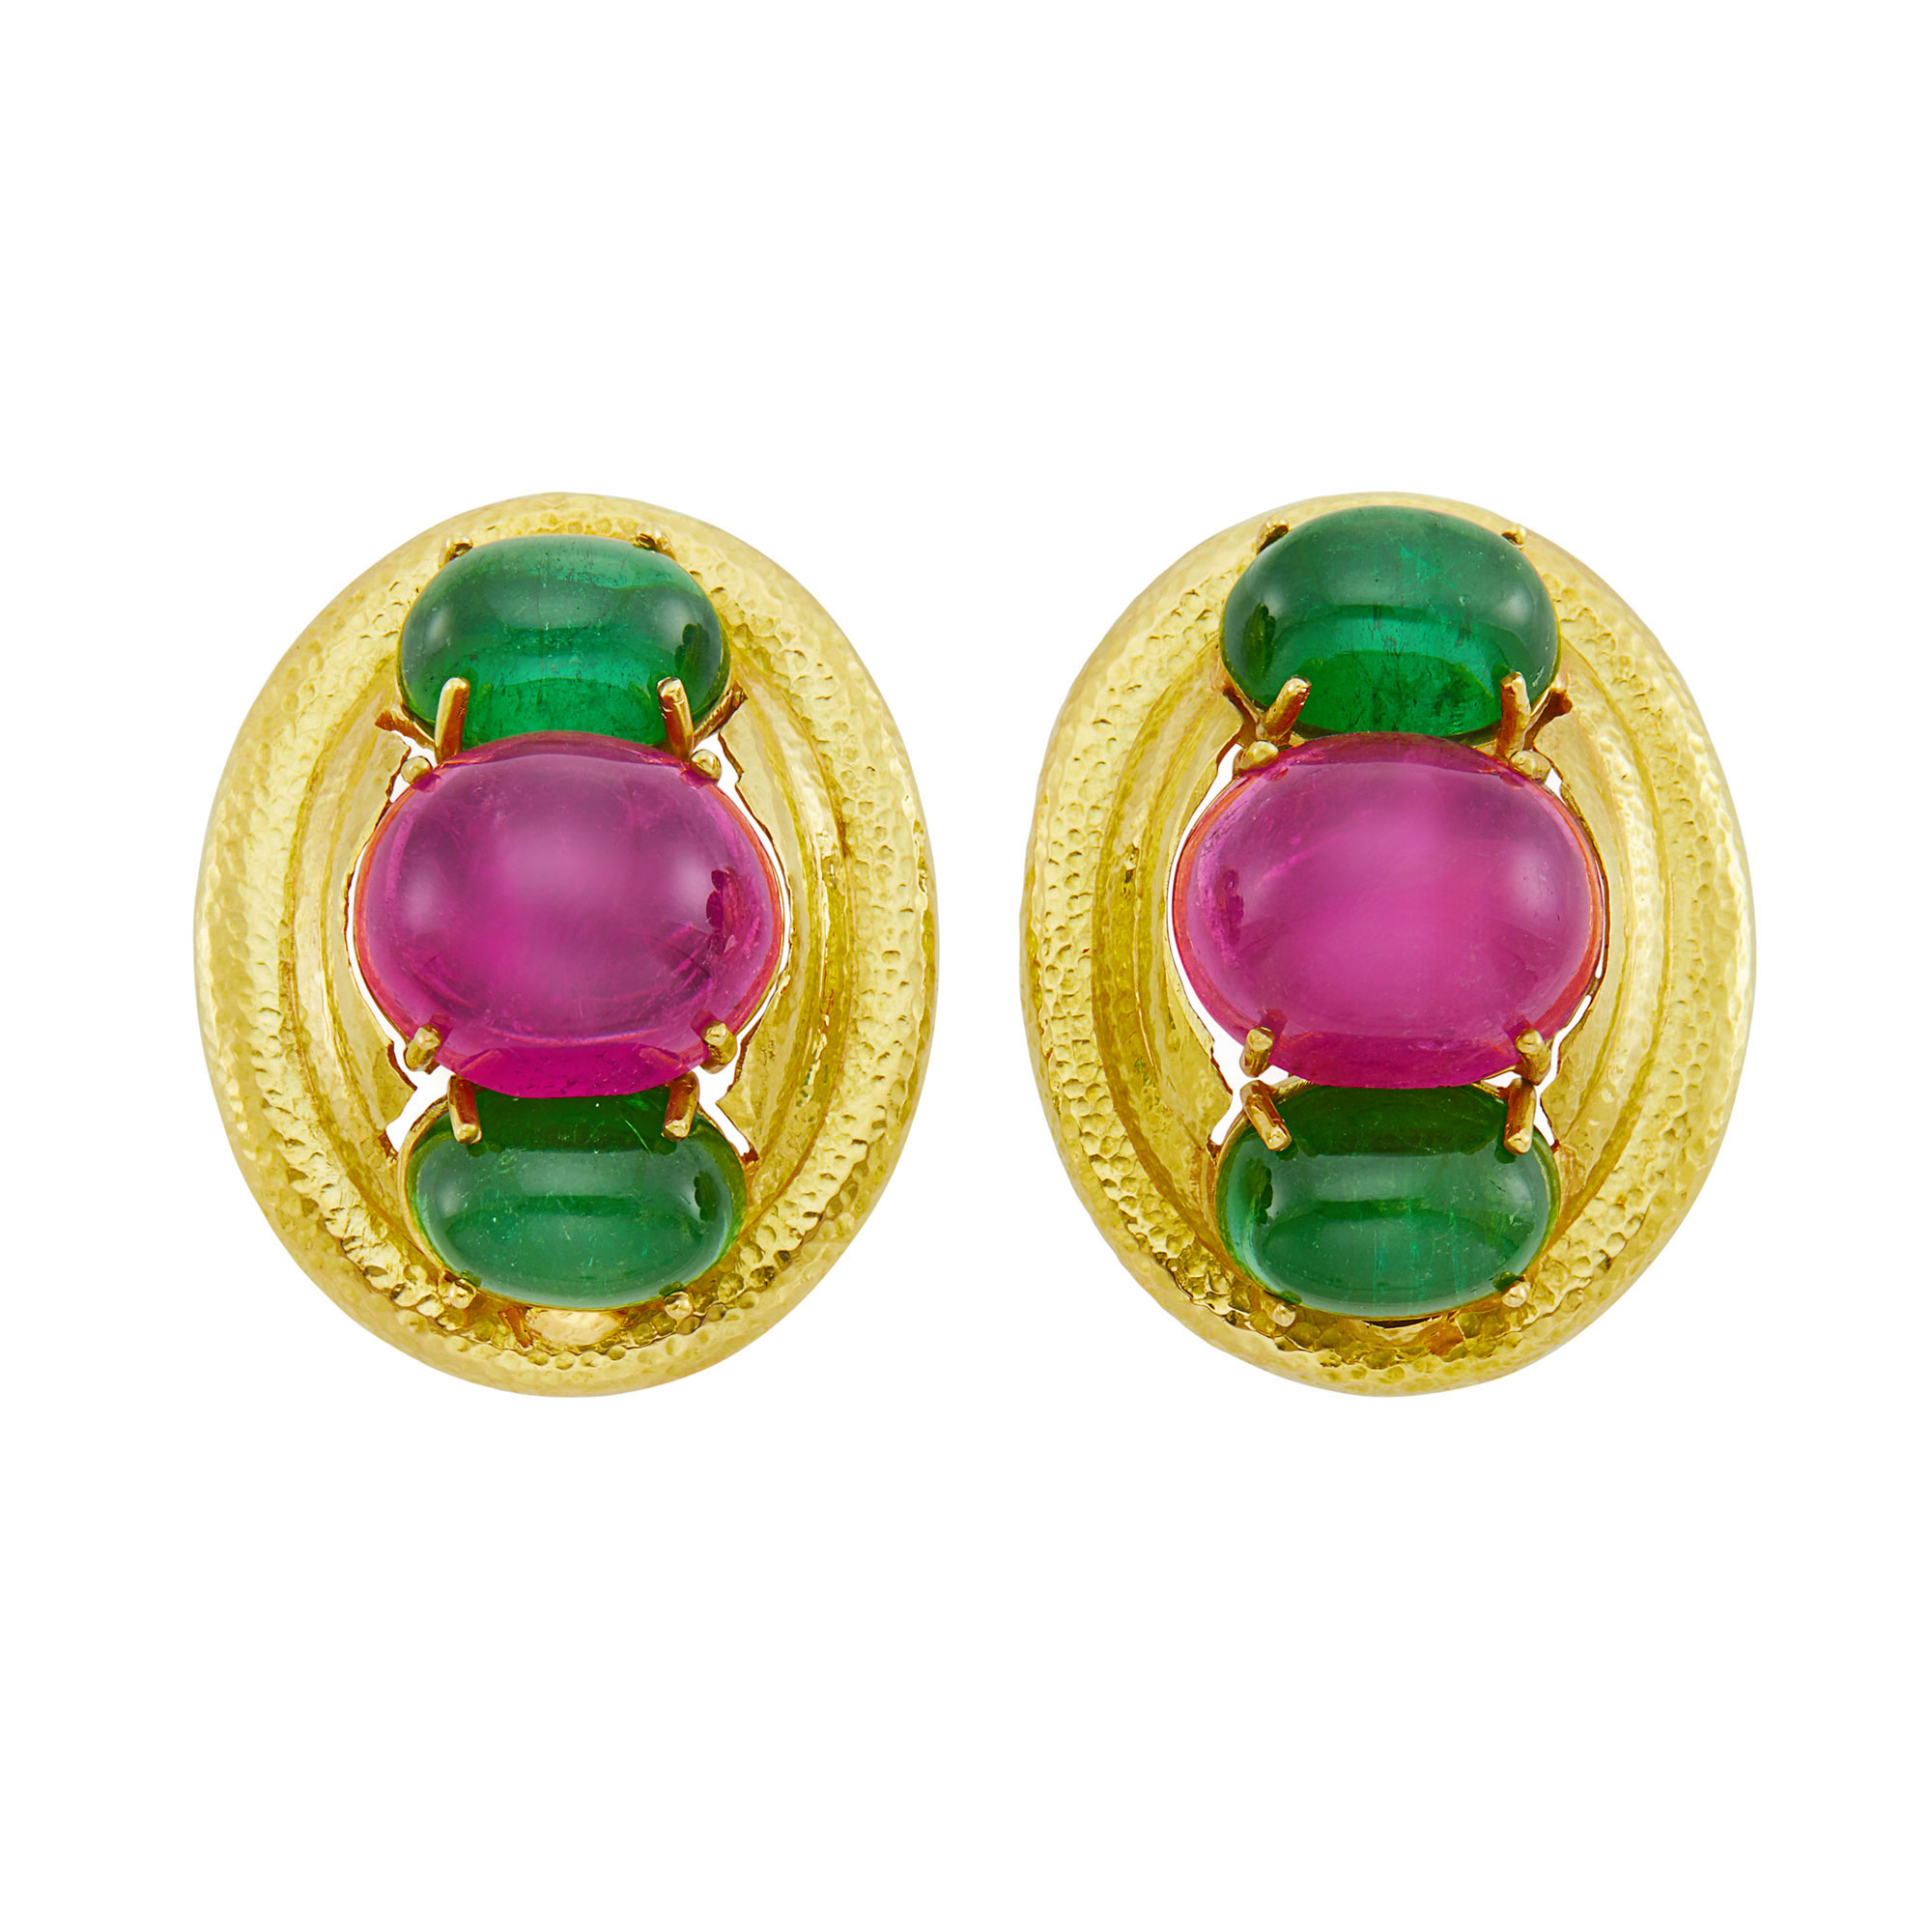 Lot image - Pair of Hammered Gold and Cabochon Pink and Green Tourmaline Earclips